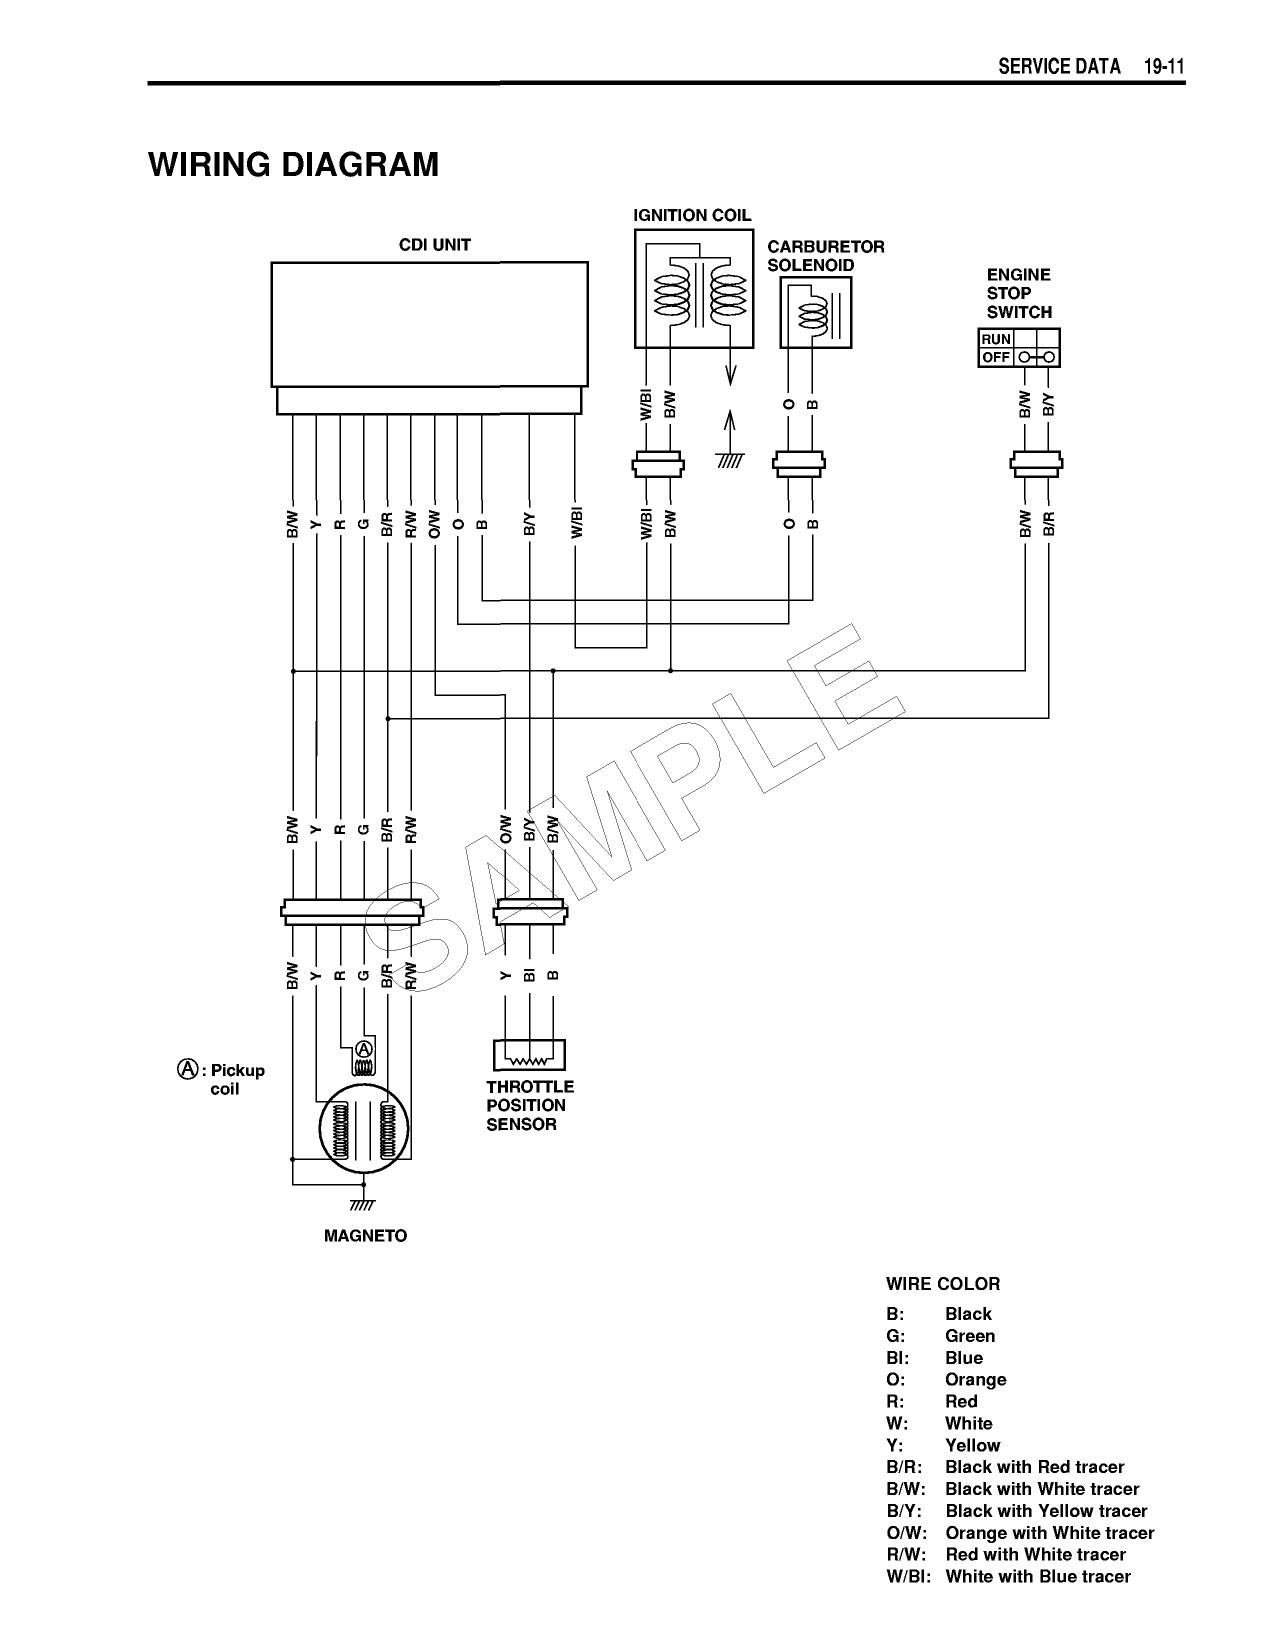 Suzuki King Quad 300 Parts Diagram. Suzuki. Auto Wiring